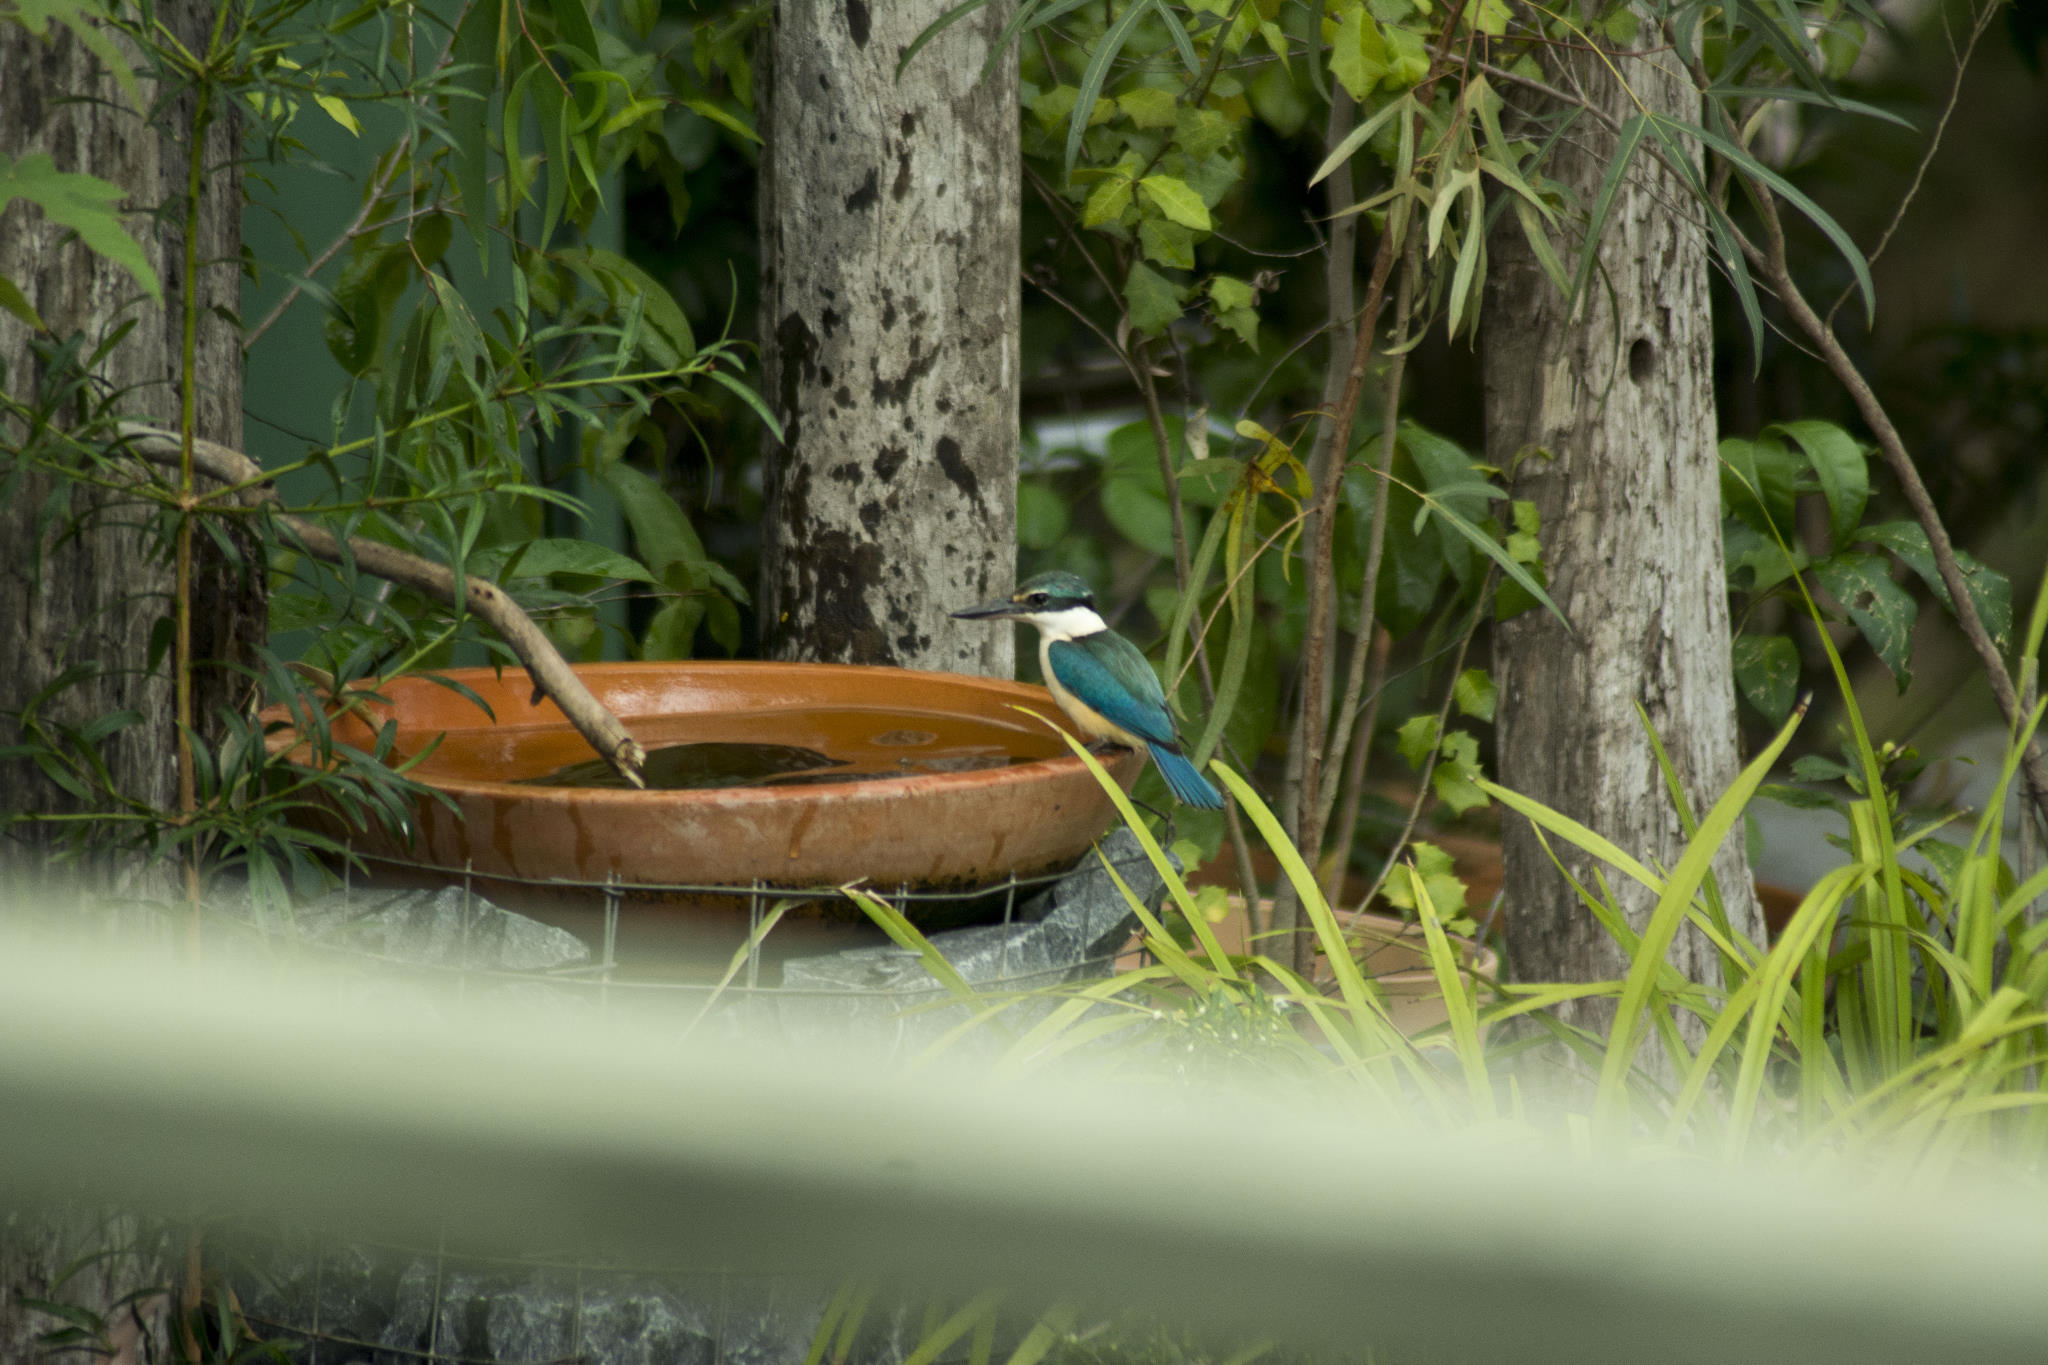 Sacred Kingfisher visiting the water habitat